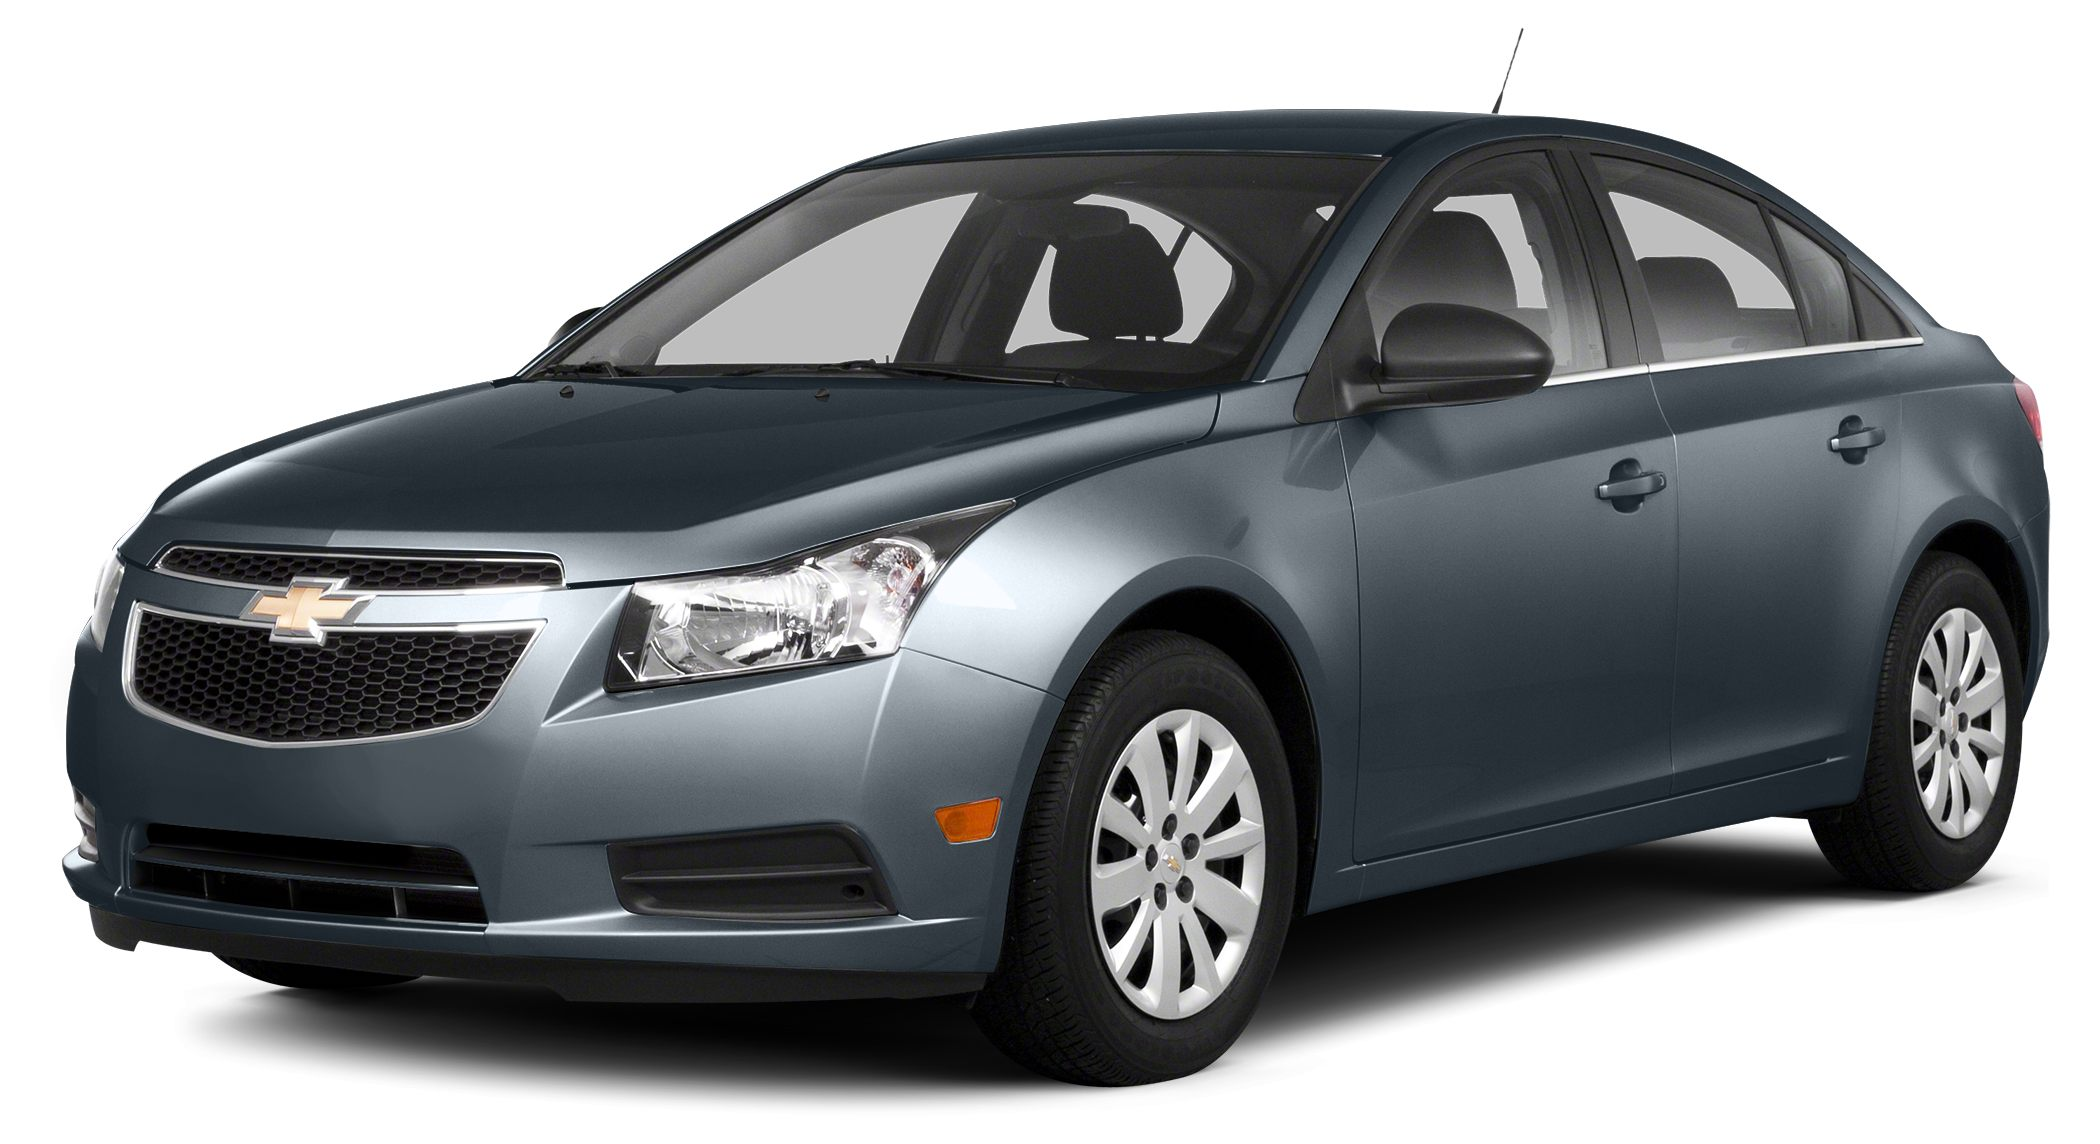 2013 Chevrolet Cruze LS Clean Carfax - 1 Owner - GM Certified - CD player - Power windows - and Re